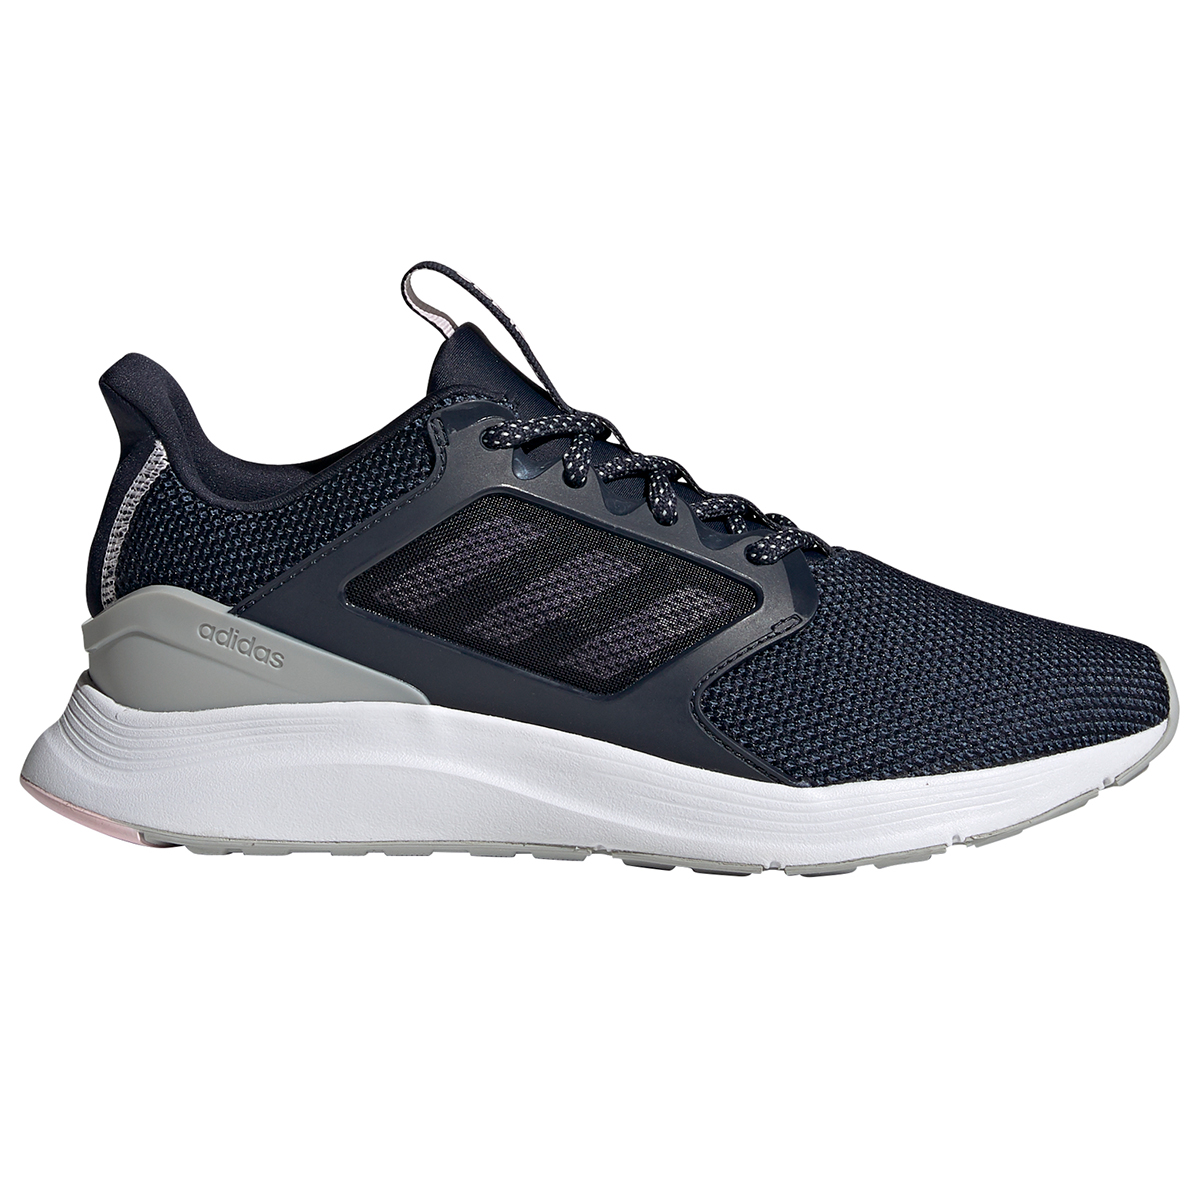 Adidas Women's Energy Falcon Running Shoes - Black, 9.5